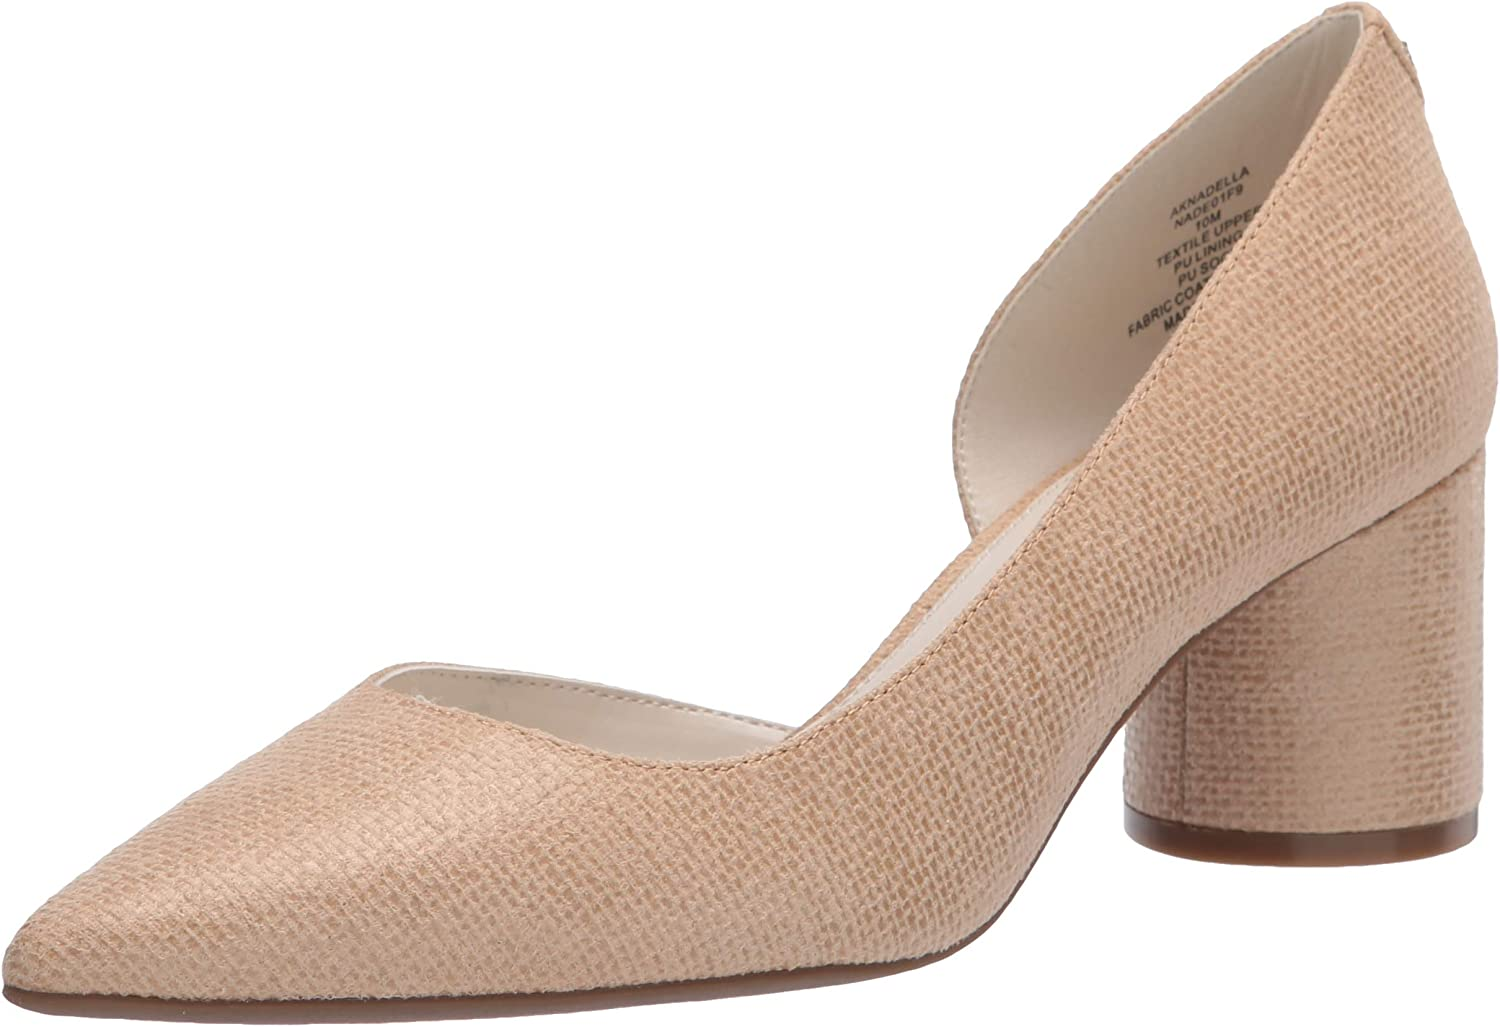 Anne Klein Women's Nadella Pump